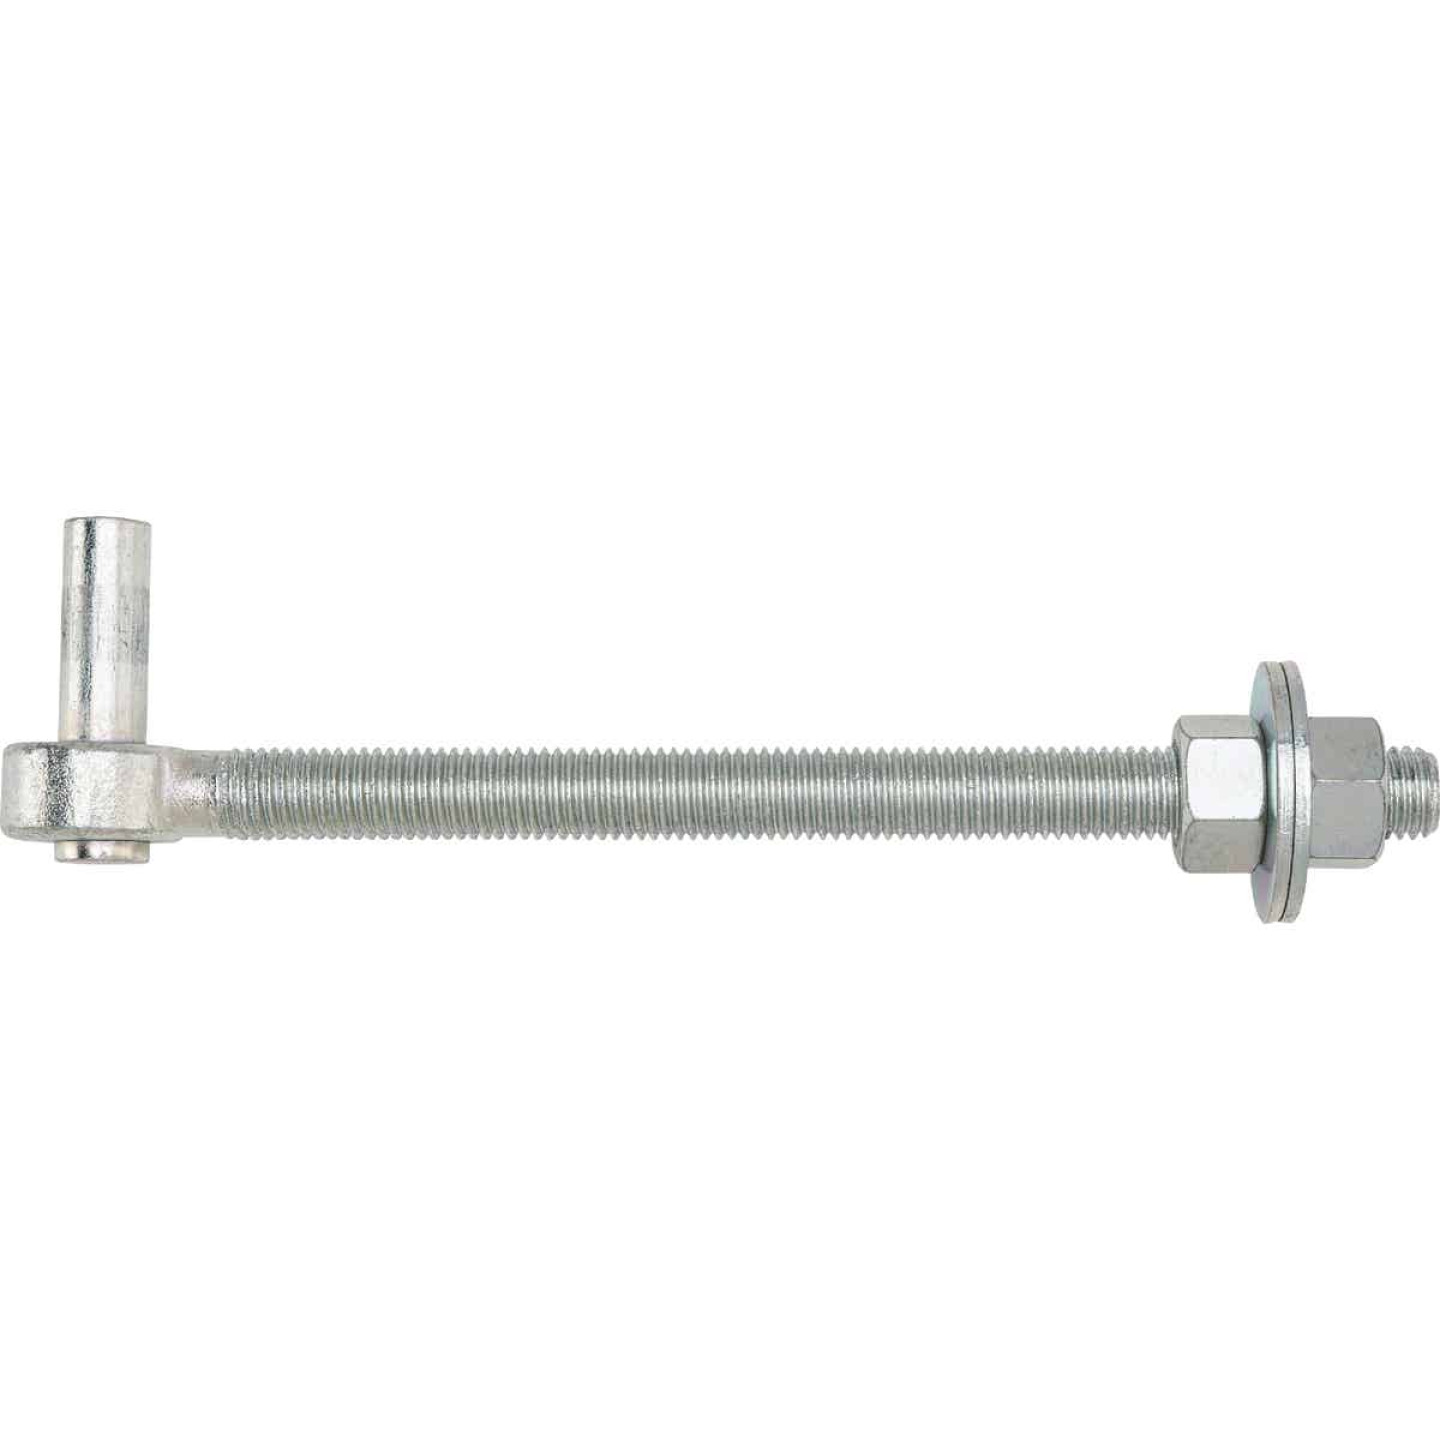 National 3/4 In. x 10 In. Zinc Bolt Hook Image 2